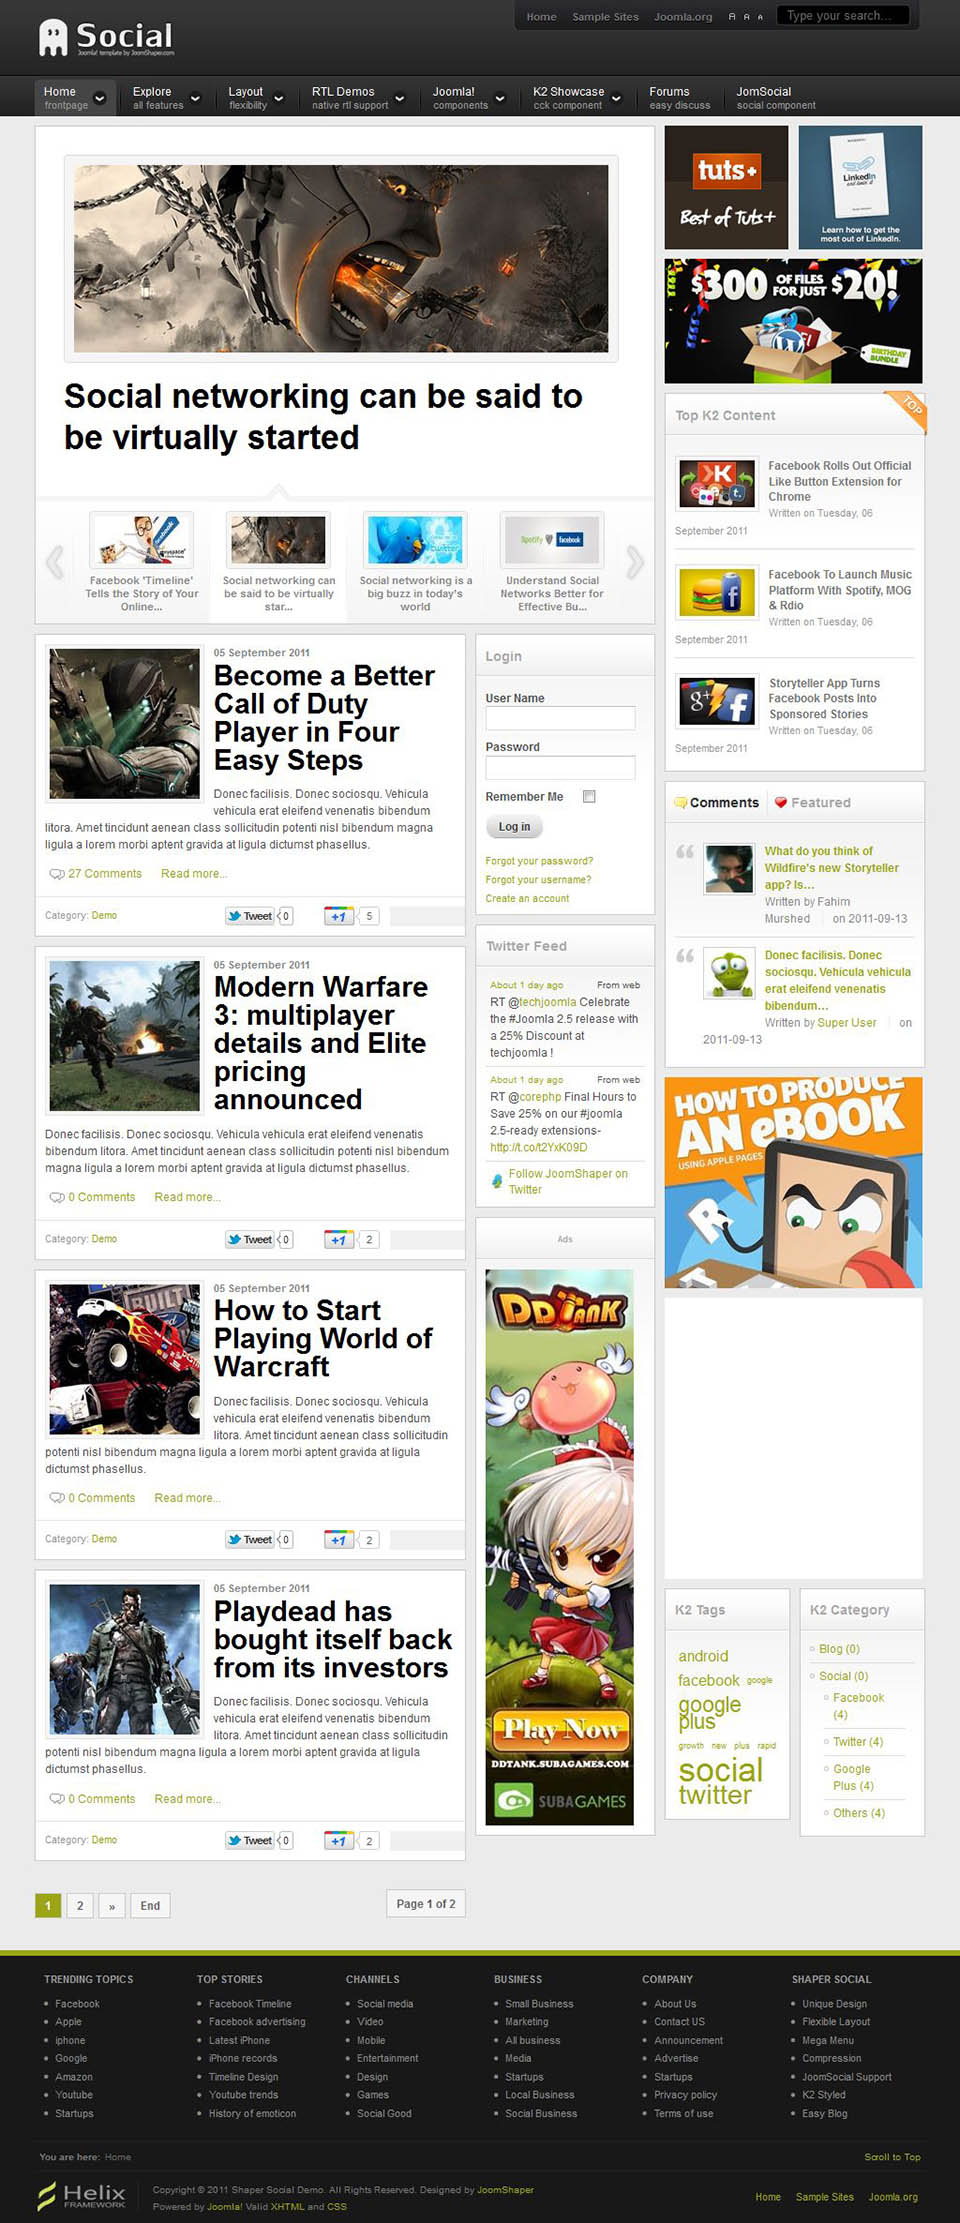 Joomshaper social v1 0 0 the community template for joomla for Social networking sites templates php